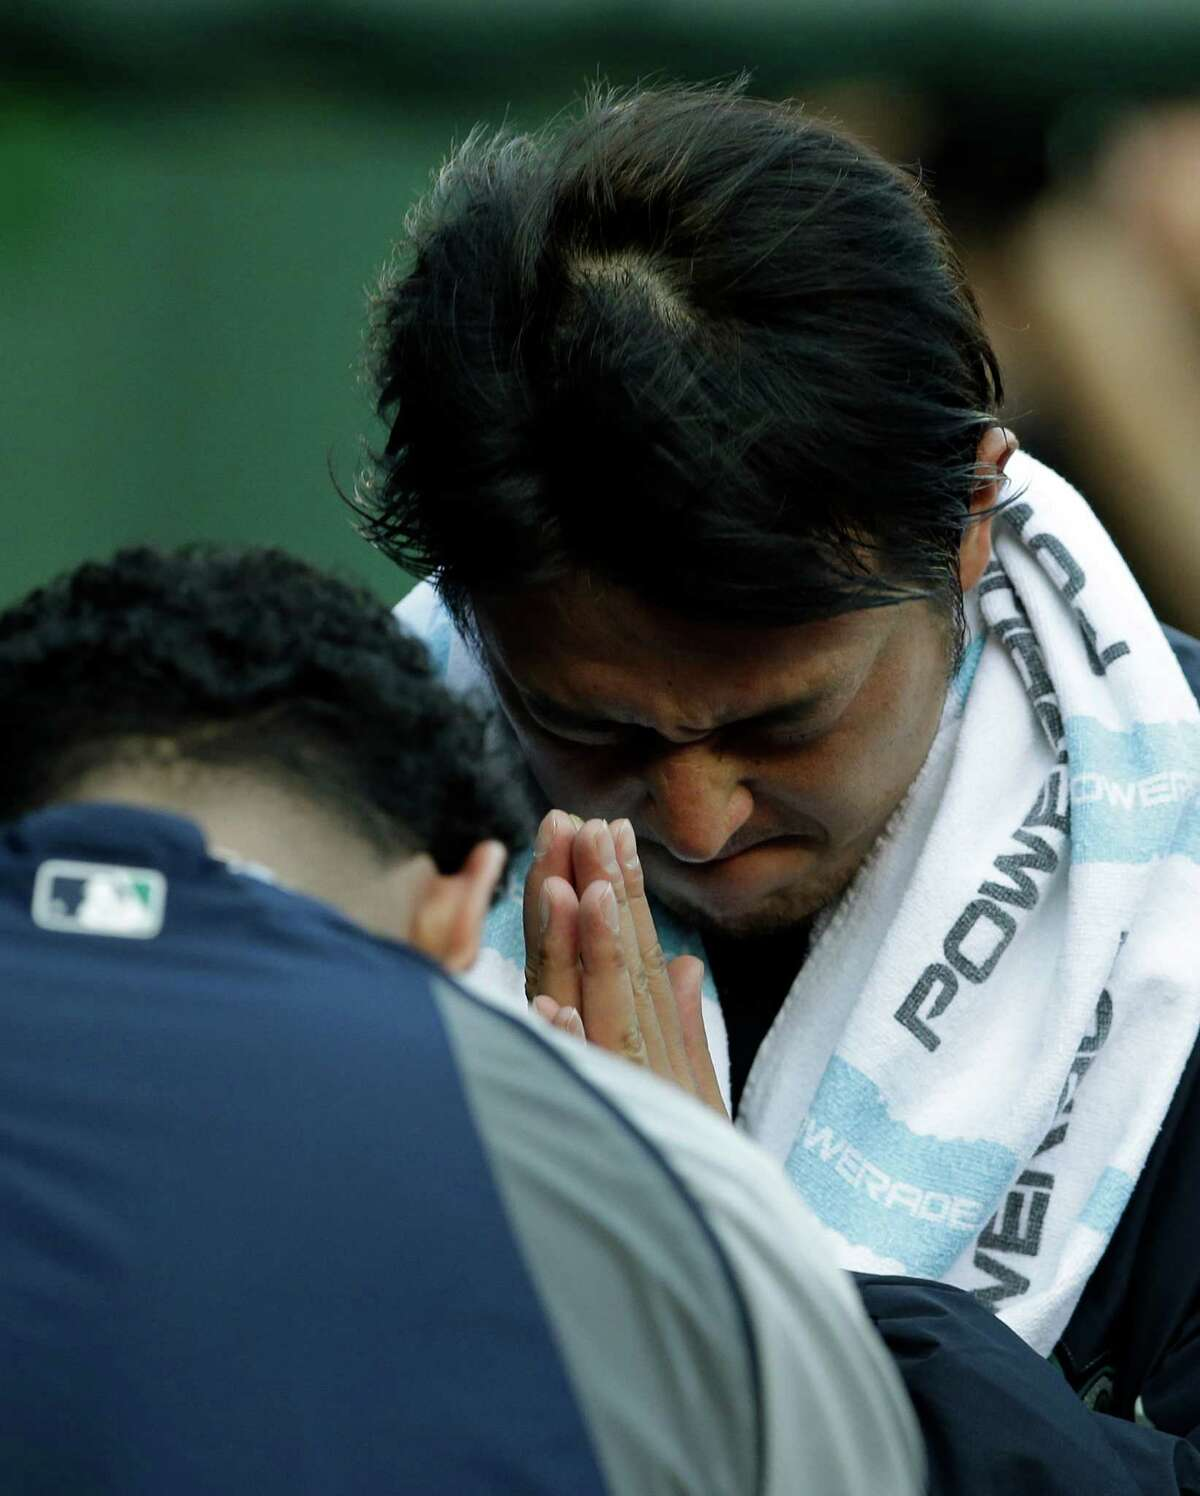 Seattle Mariners' Felix Hernandez, left, and Hisashi Iwakuma, bow to each other in the dugout before their baseball game against the Texas Rangers, Tuesday, May 20, 2014, in Arlington, Texas. (AP Photo/Tony Gutierrez )